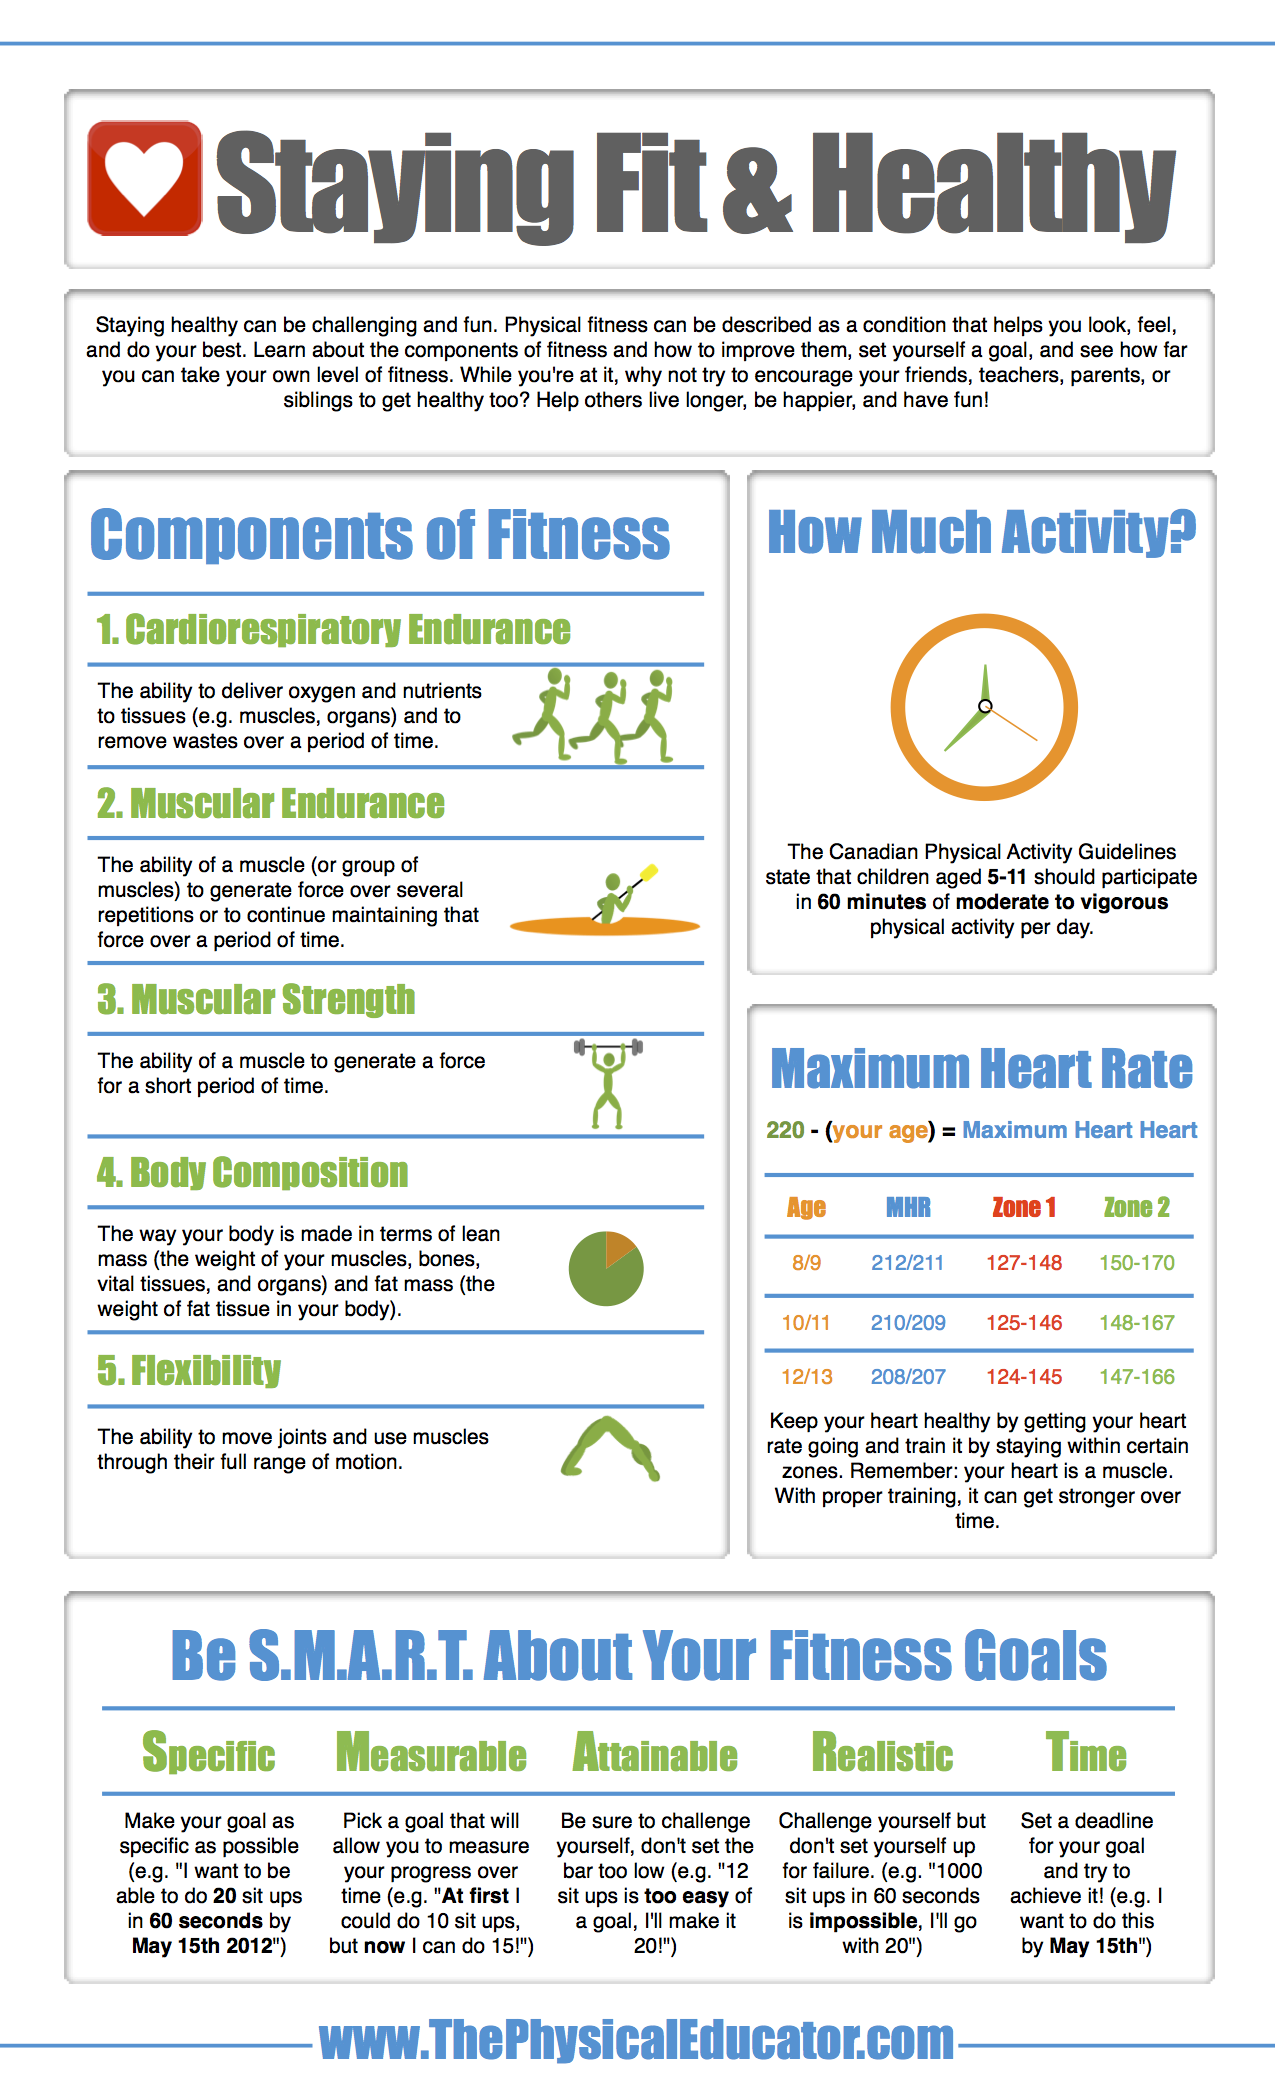 Components of Fitness Infographic